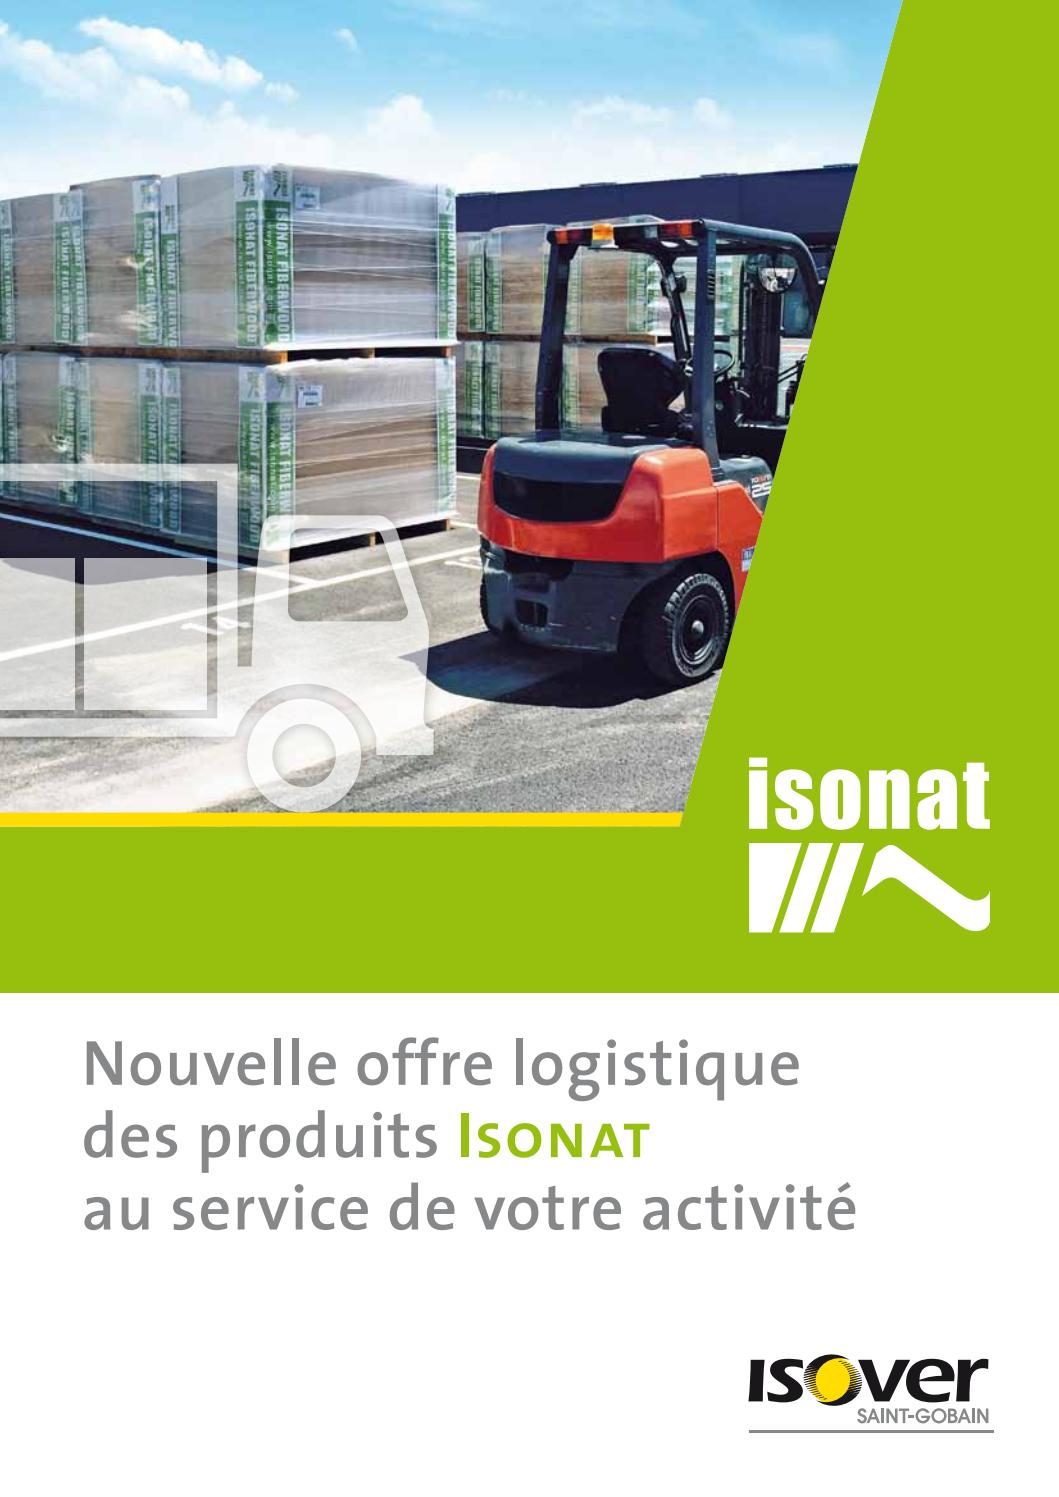 offre logistique isonat et isover by isonat issuu. Black Bedroom Furniture Sets. Home Design Ideas